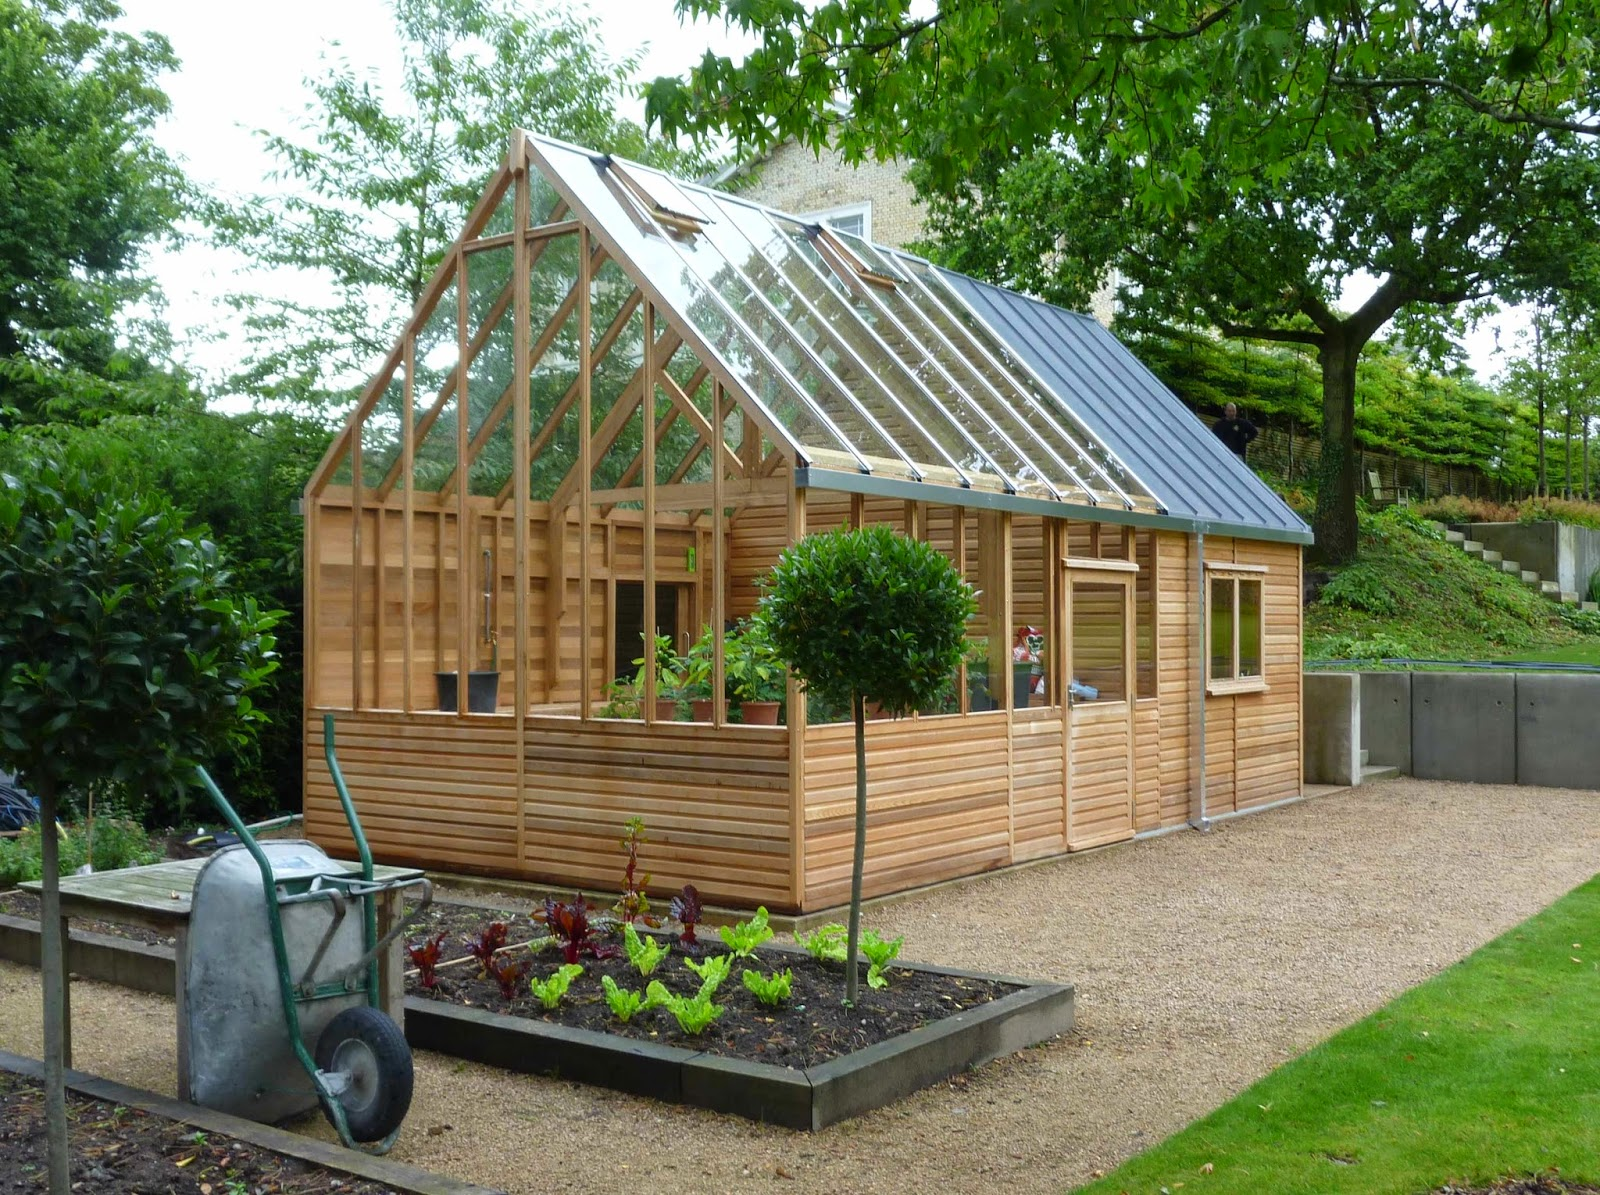 13 great diy greenhouse ideas instant knowledge ForGreen Ideas For Houses